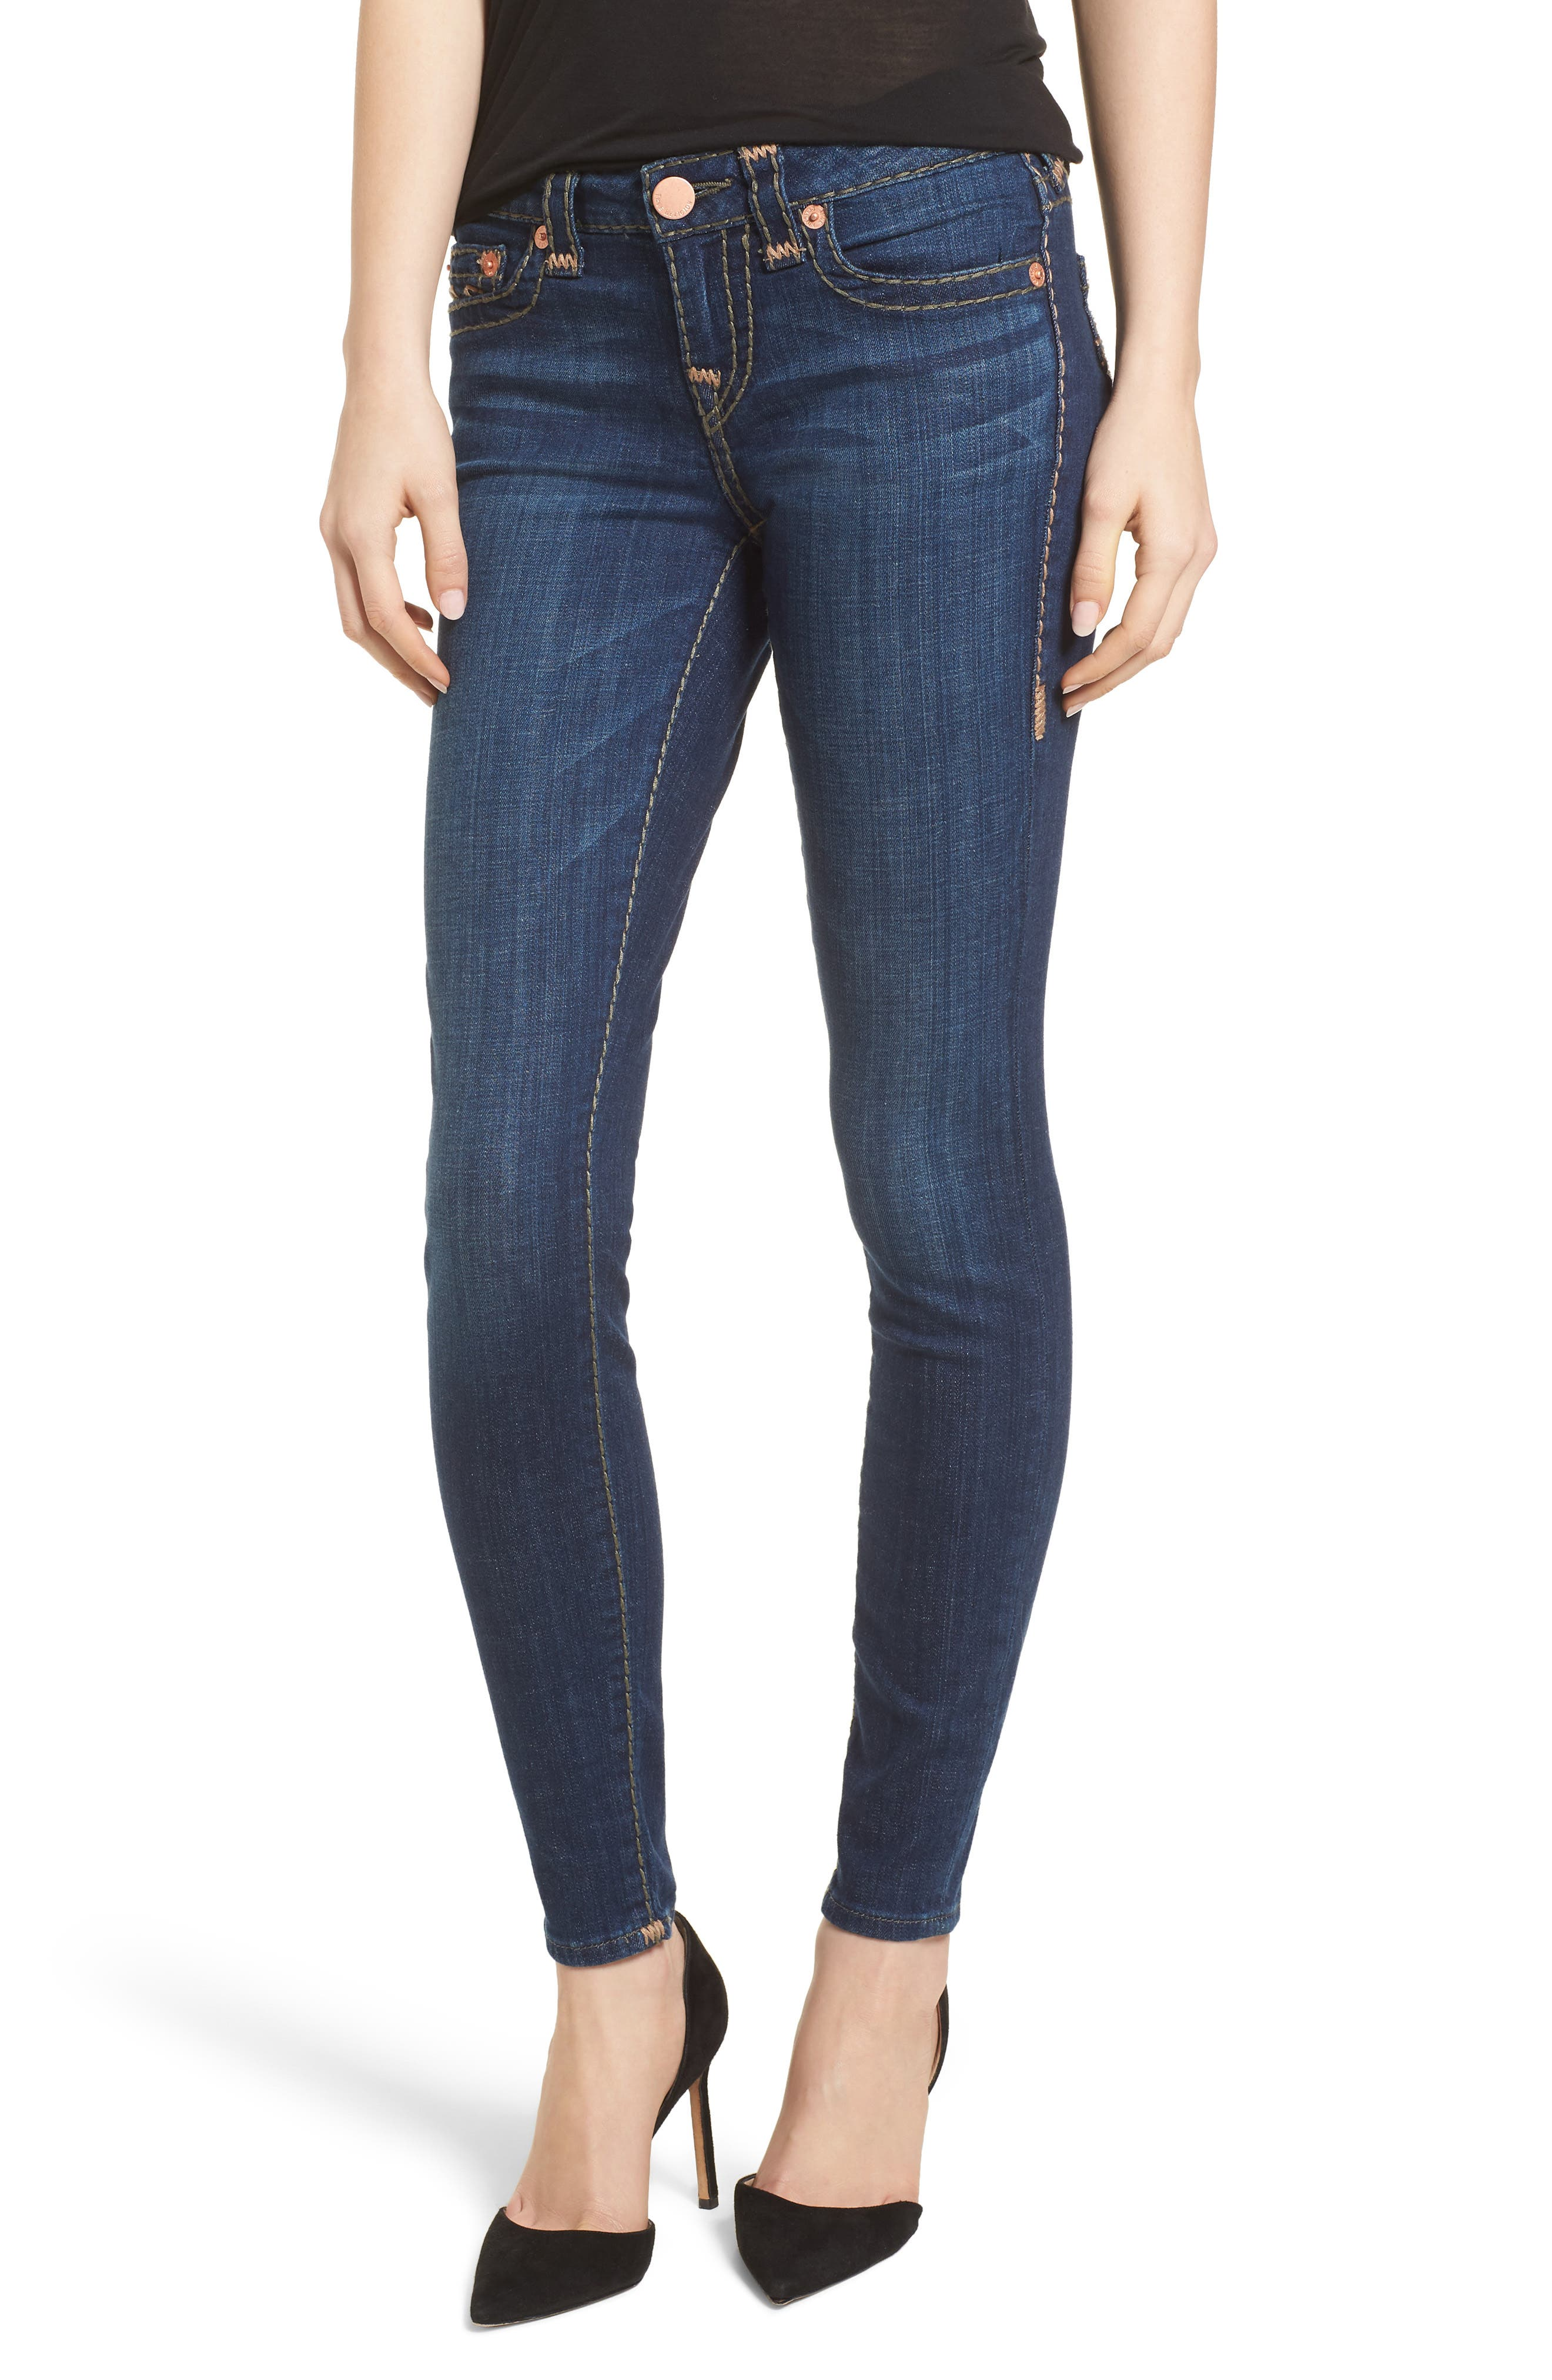 Halle Skinny Jeans,                             Main thumbnail 1, color,                             402